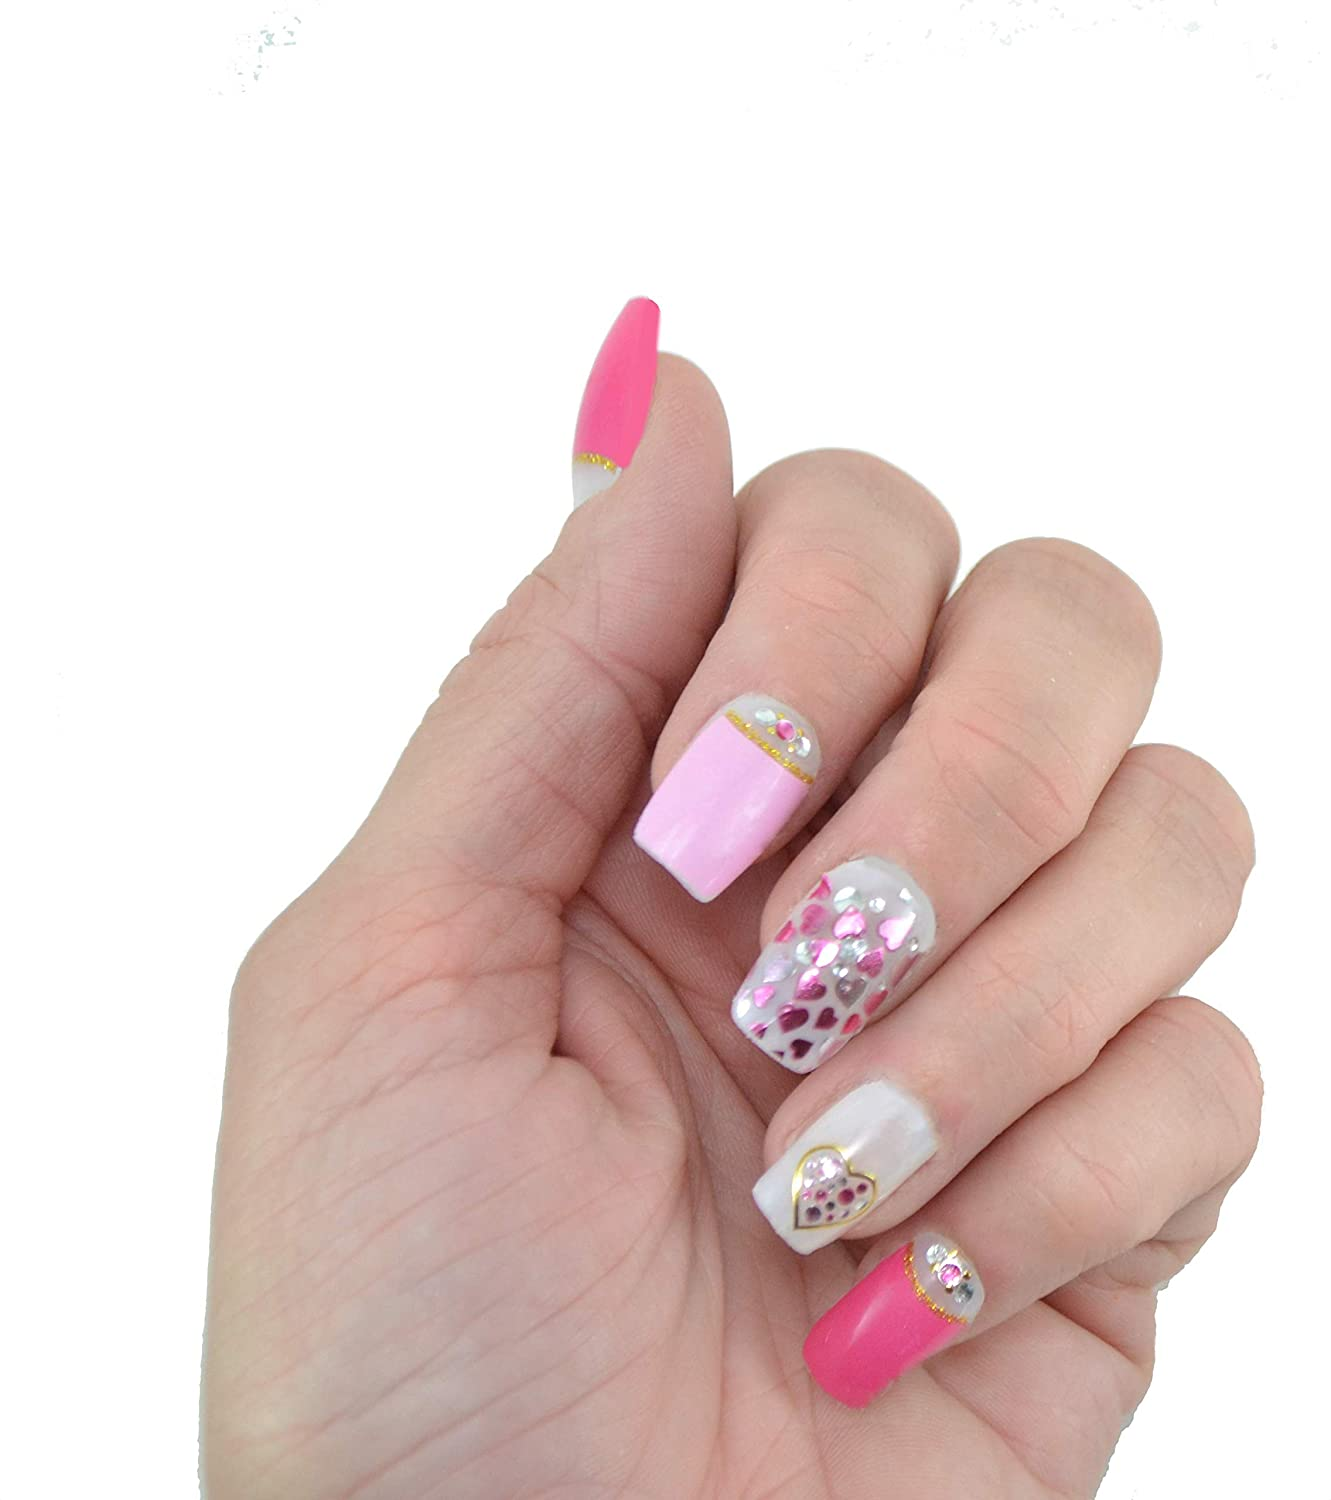 Amazon.com: Nail Wraps, Beautiful Nail Art, Pink with Silvery Hearts ...